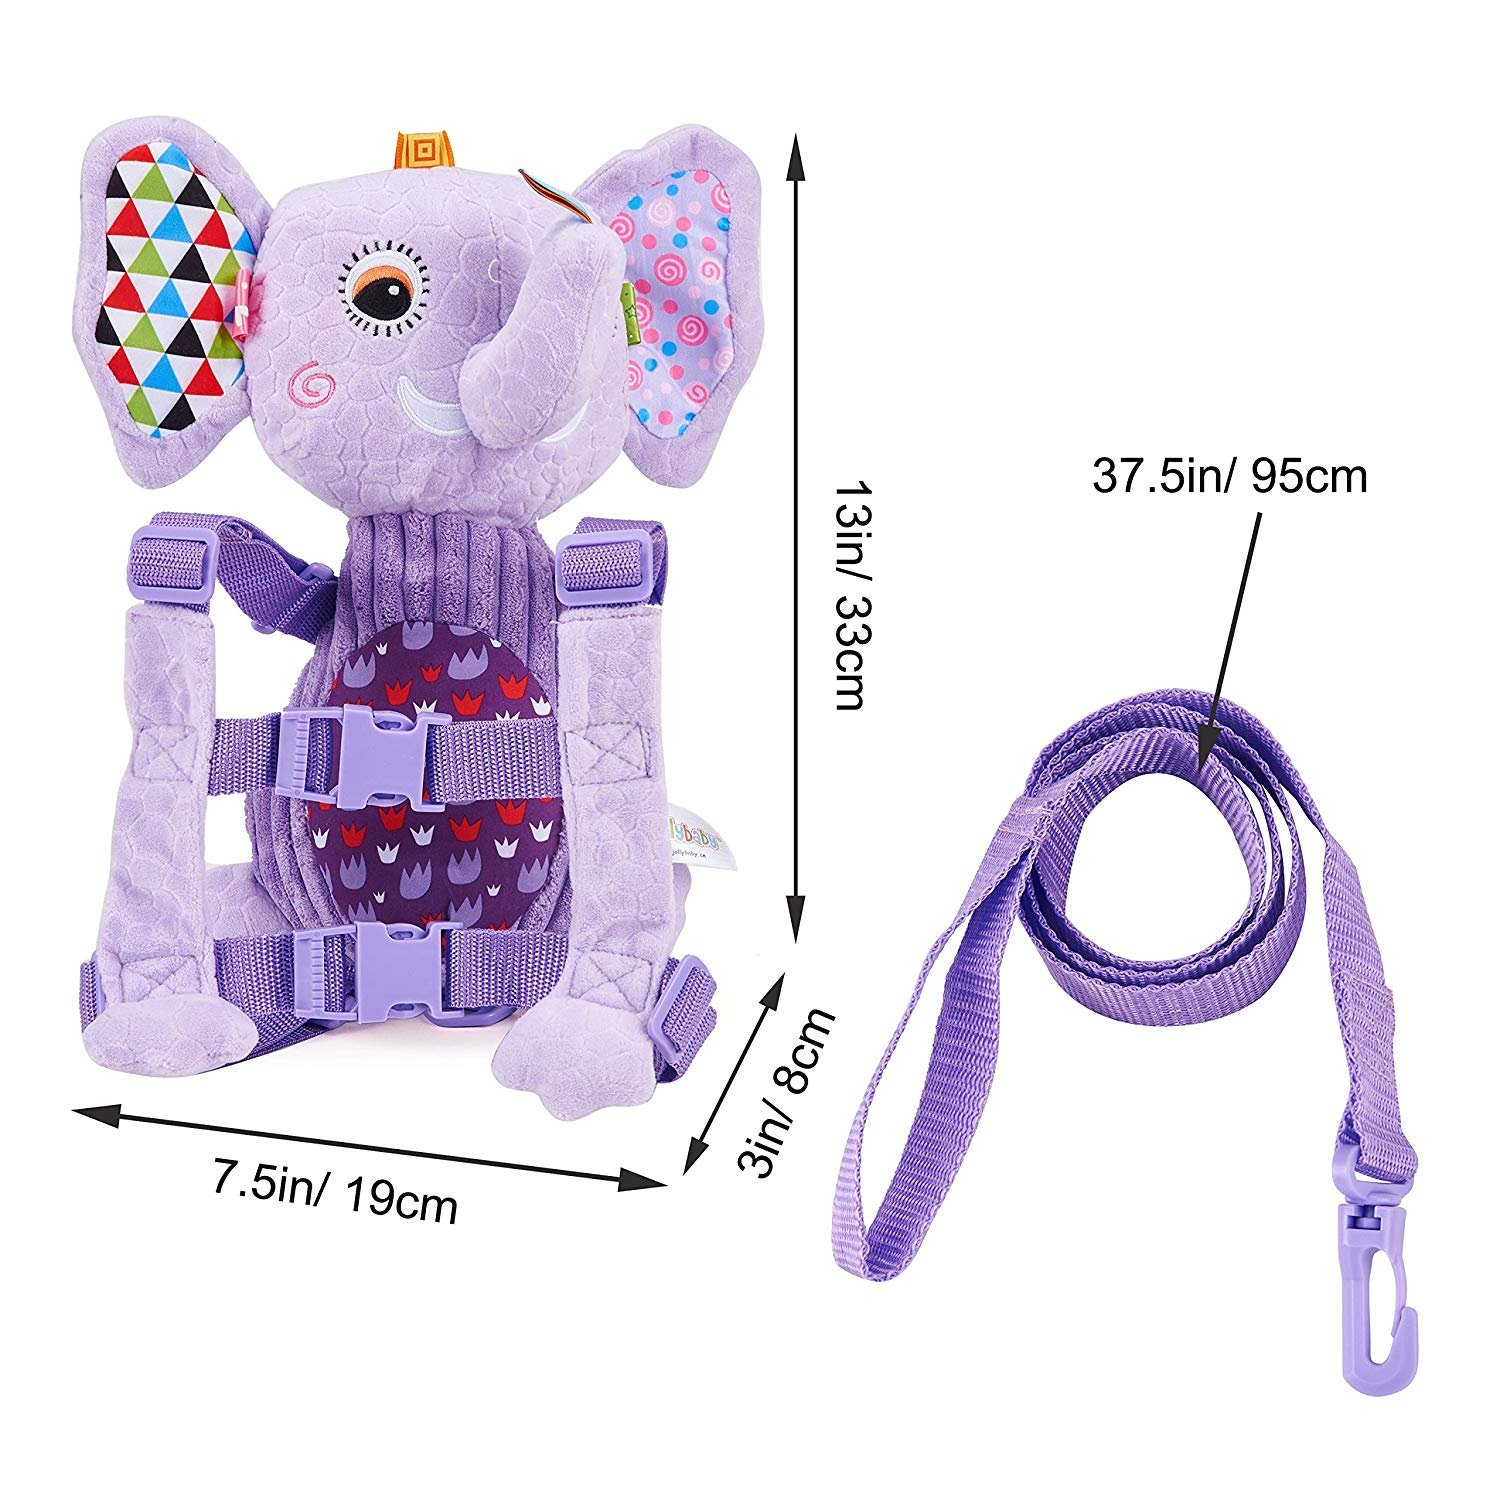 Mufly Toddler Safety Harness Backpack Children's Walking Leash Strap and Name Label -Multicolor (purple) by Mufly (Image #6)